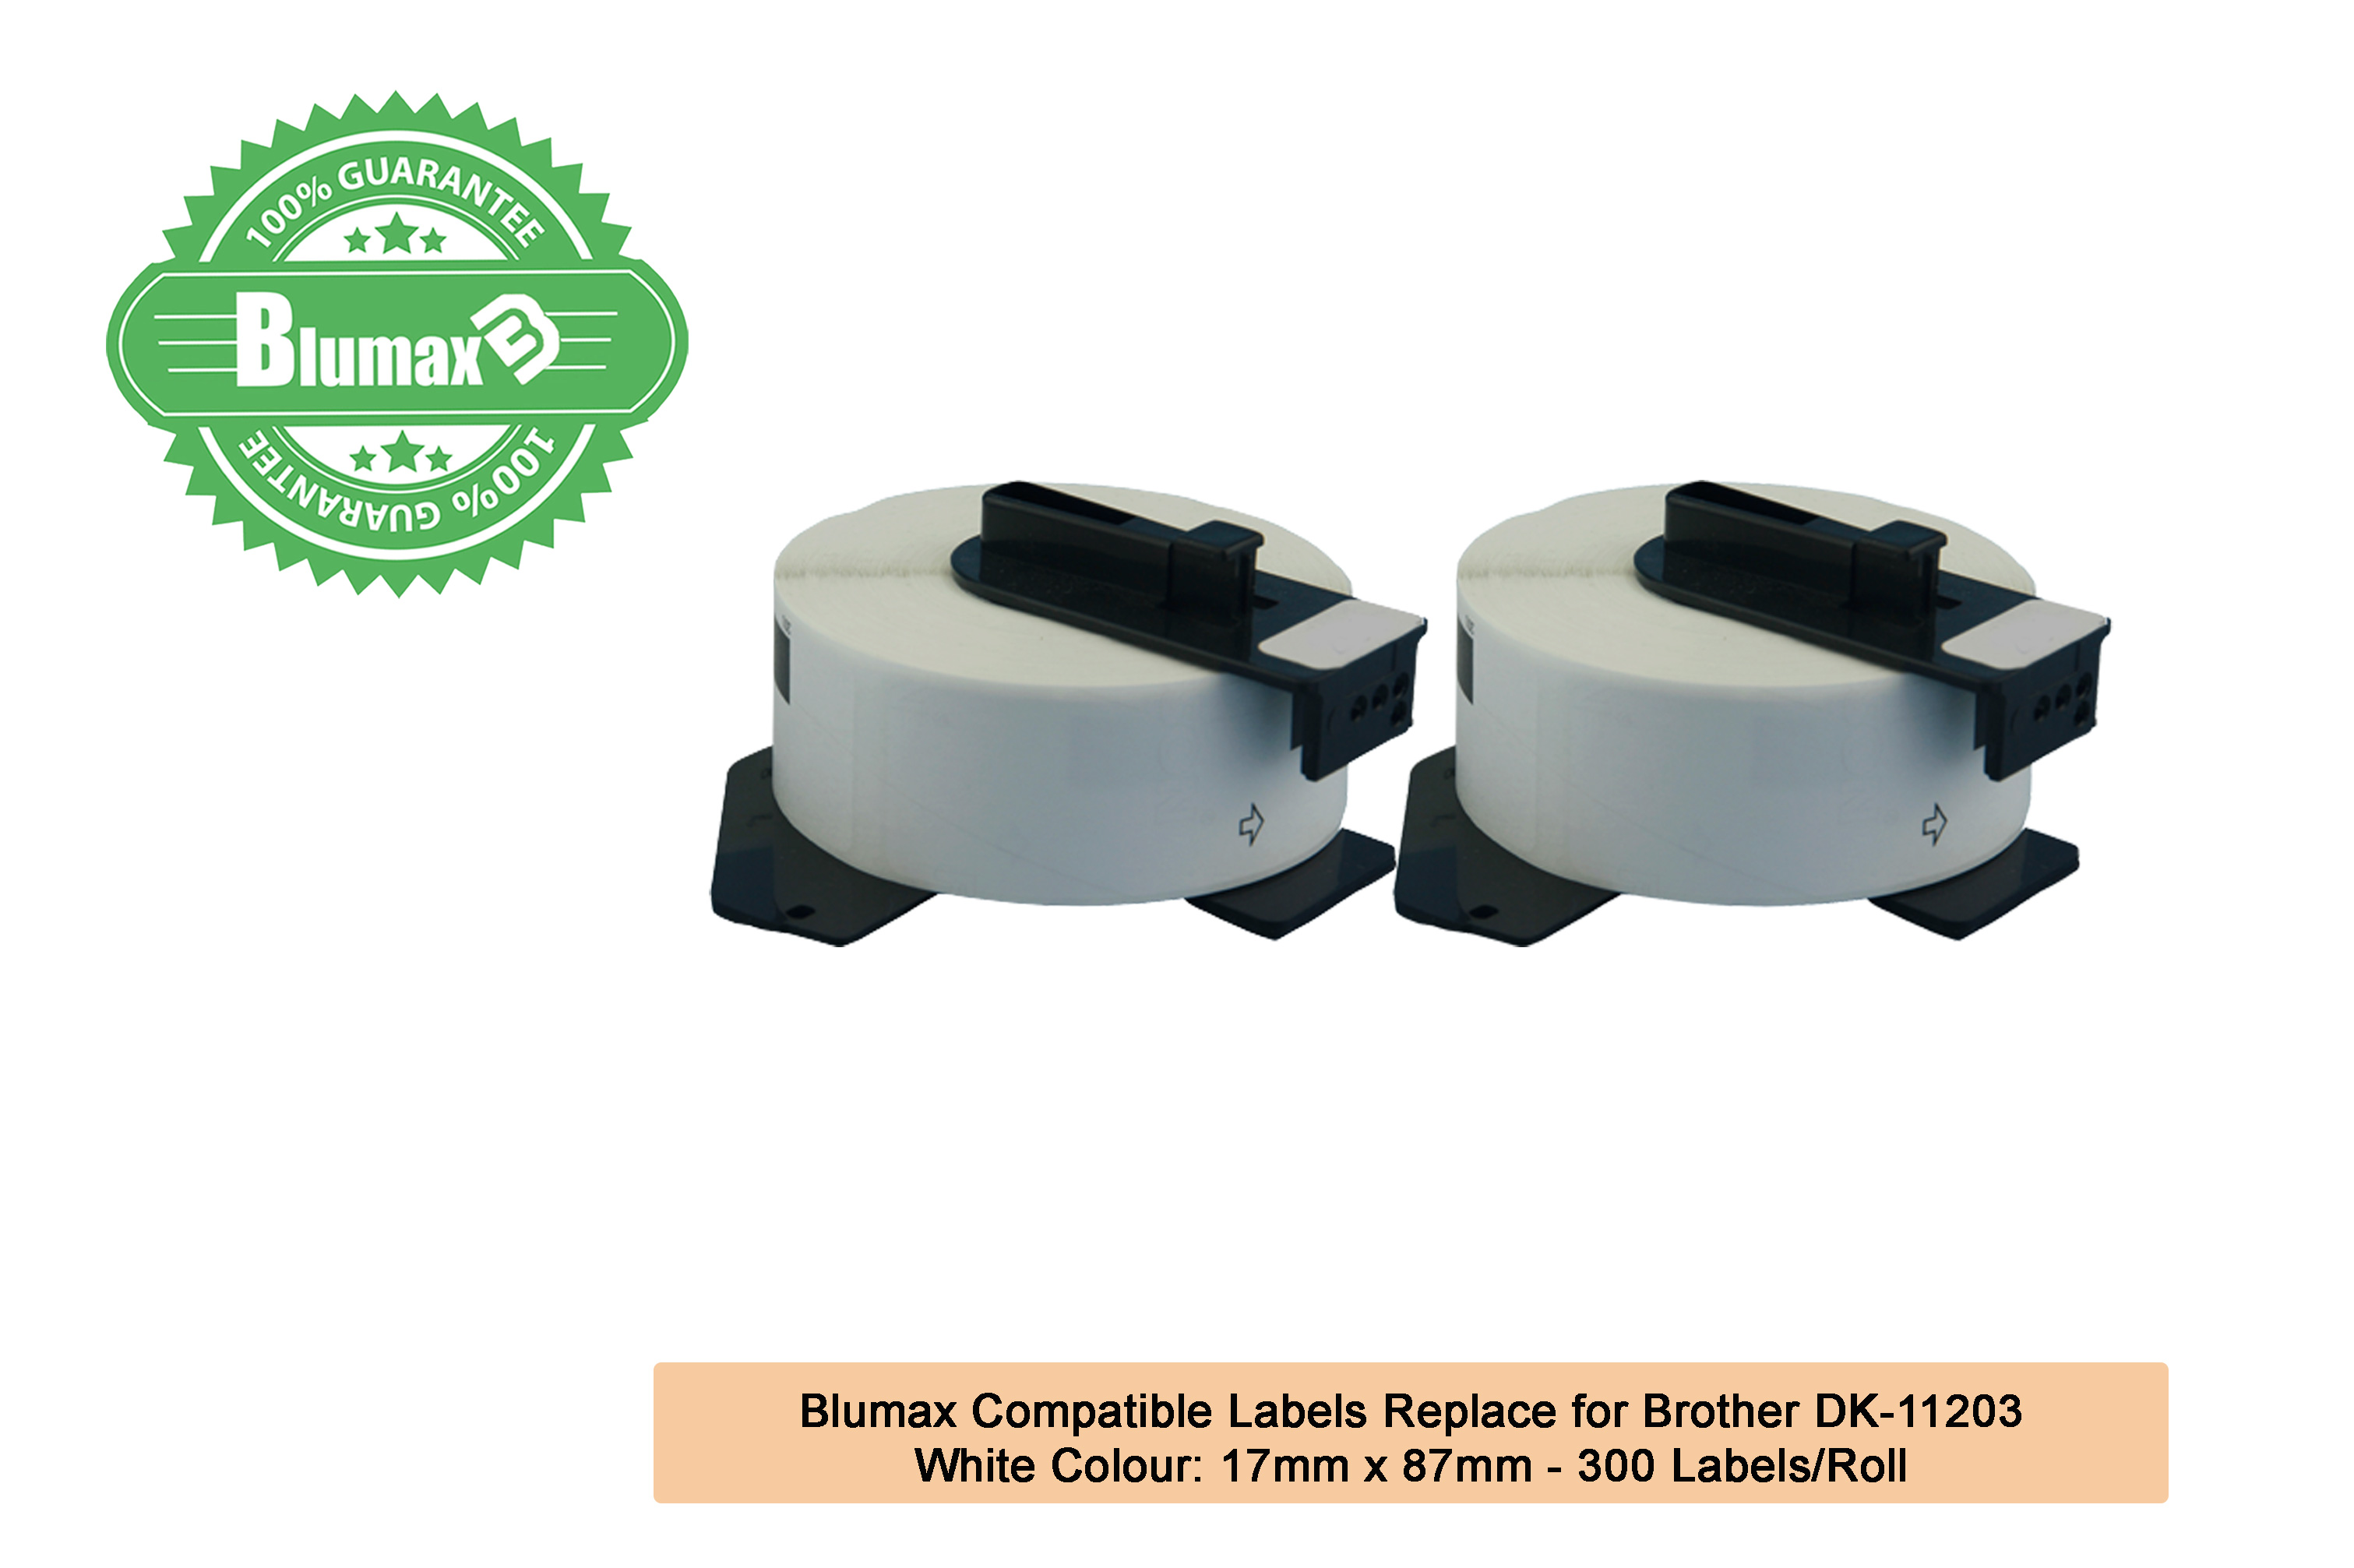 2x Compatible Brother DK-11203 Label – 17mm x 87mm, 300 Labels/Roll